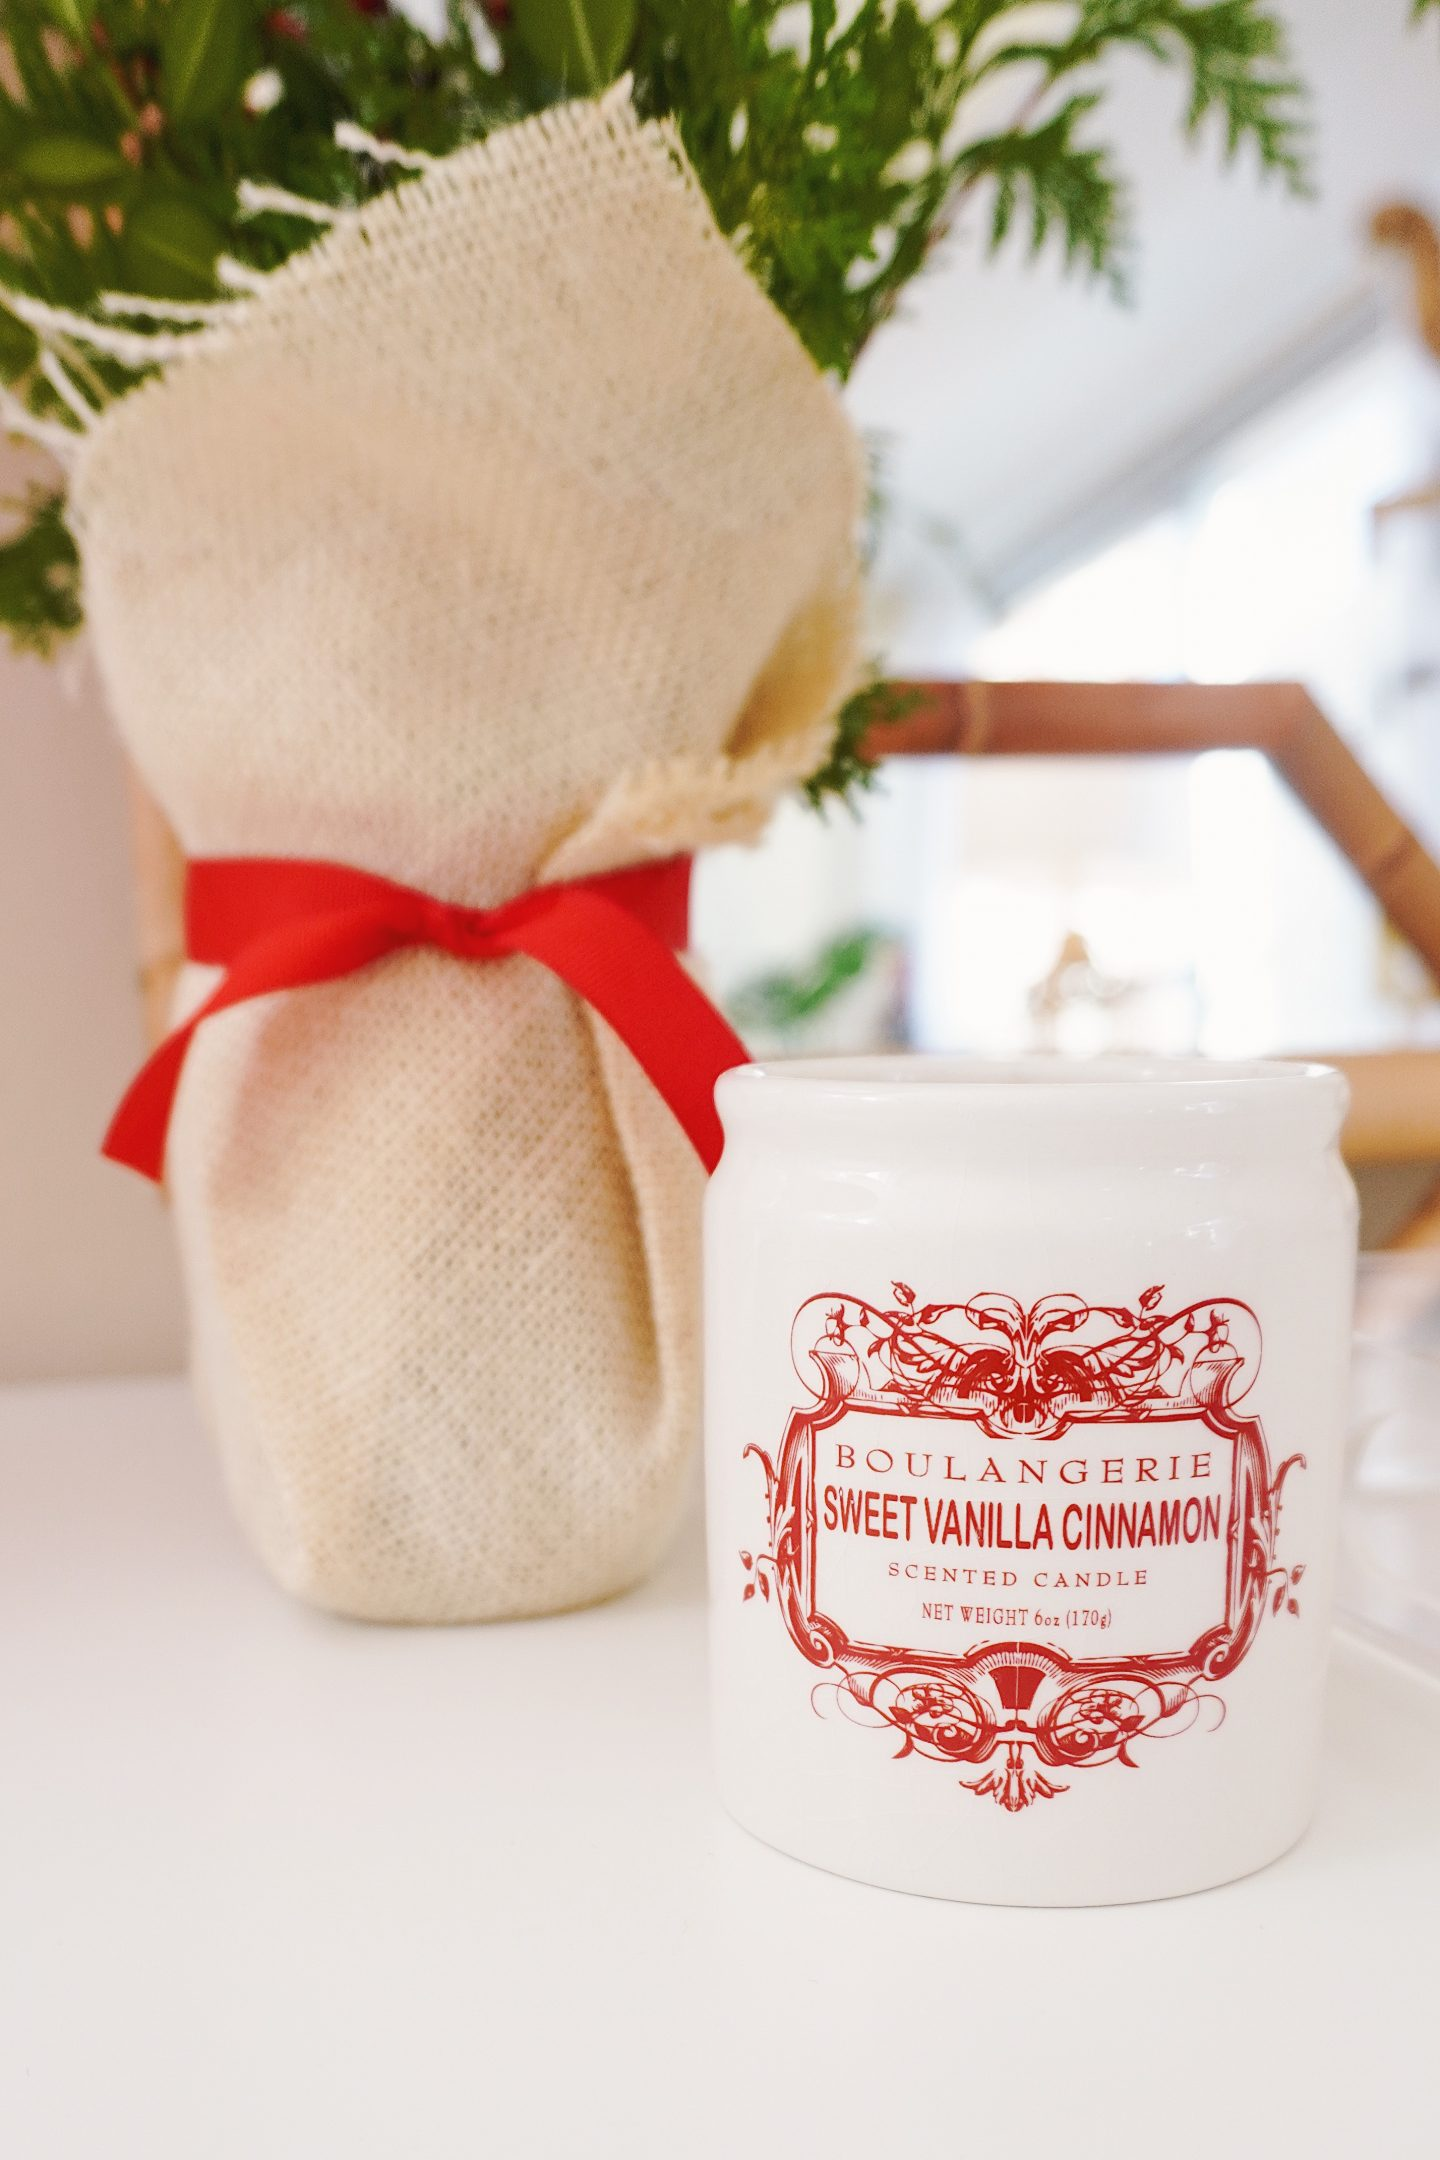 Sweet vanilla cinnamon candle from Anthropologie